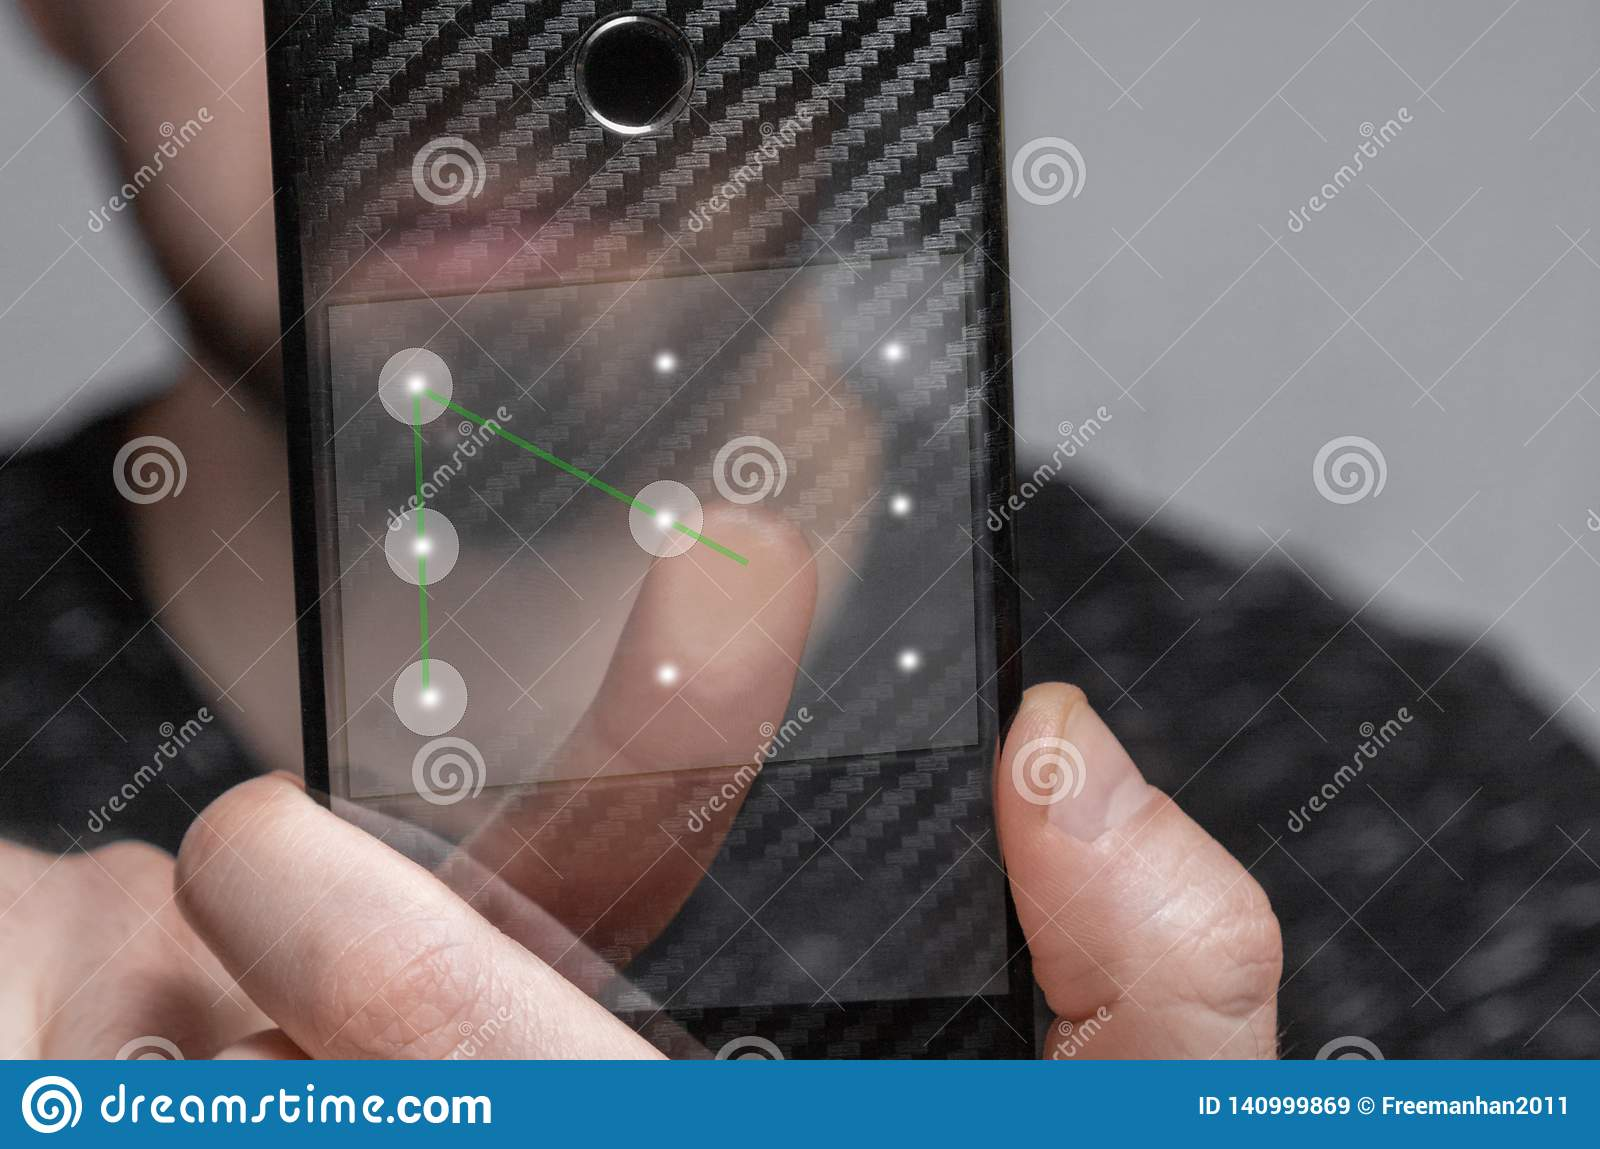 The young man uses the template ID to unlock the phone